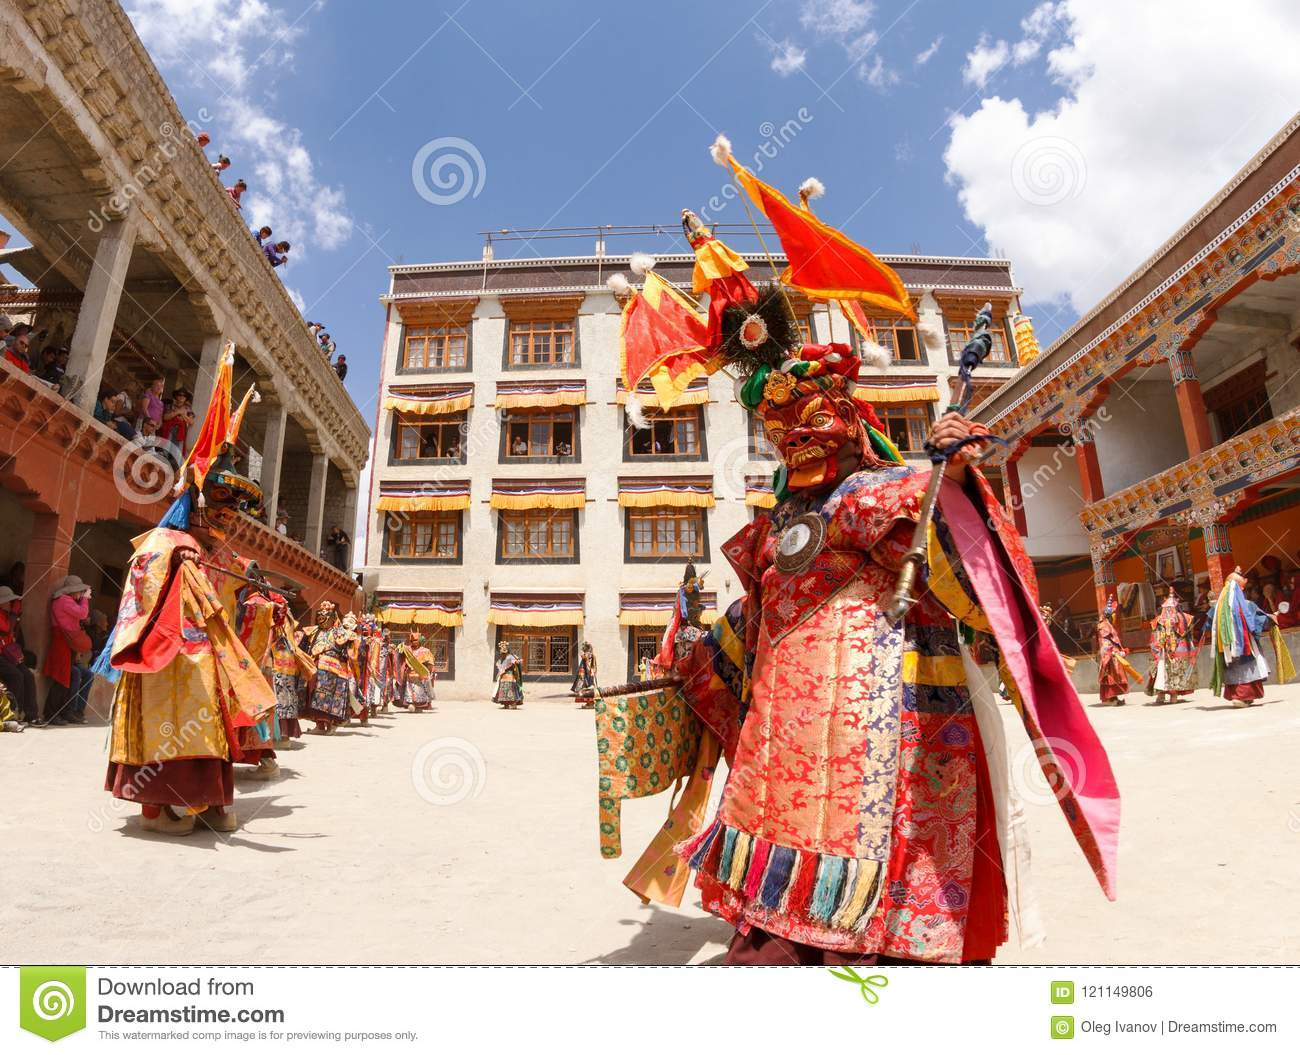 Monks perform a religious masked and costumed mystery dance of Tibetan Buddhism at the traditional Cham Dance Festival